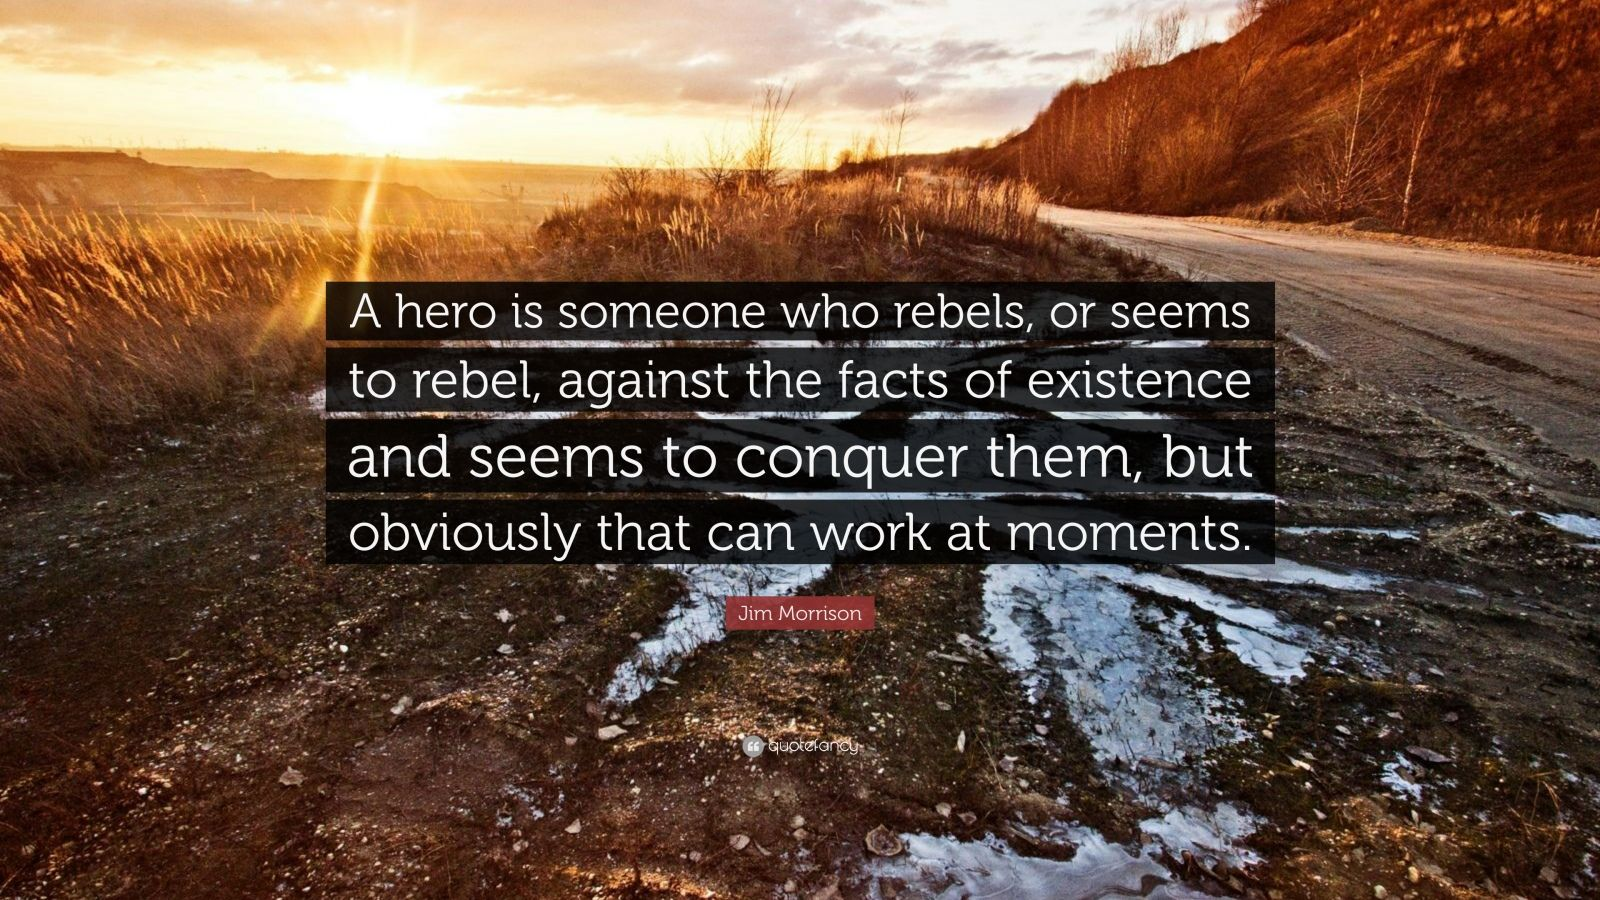 """Jim Morrison Quote: """"A hero is someone who rebels, or seems to rebel, against the facts of existence and seems to conquer them, but obviously that can work at moments."""""""